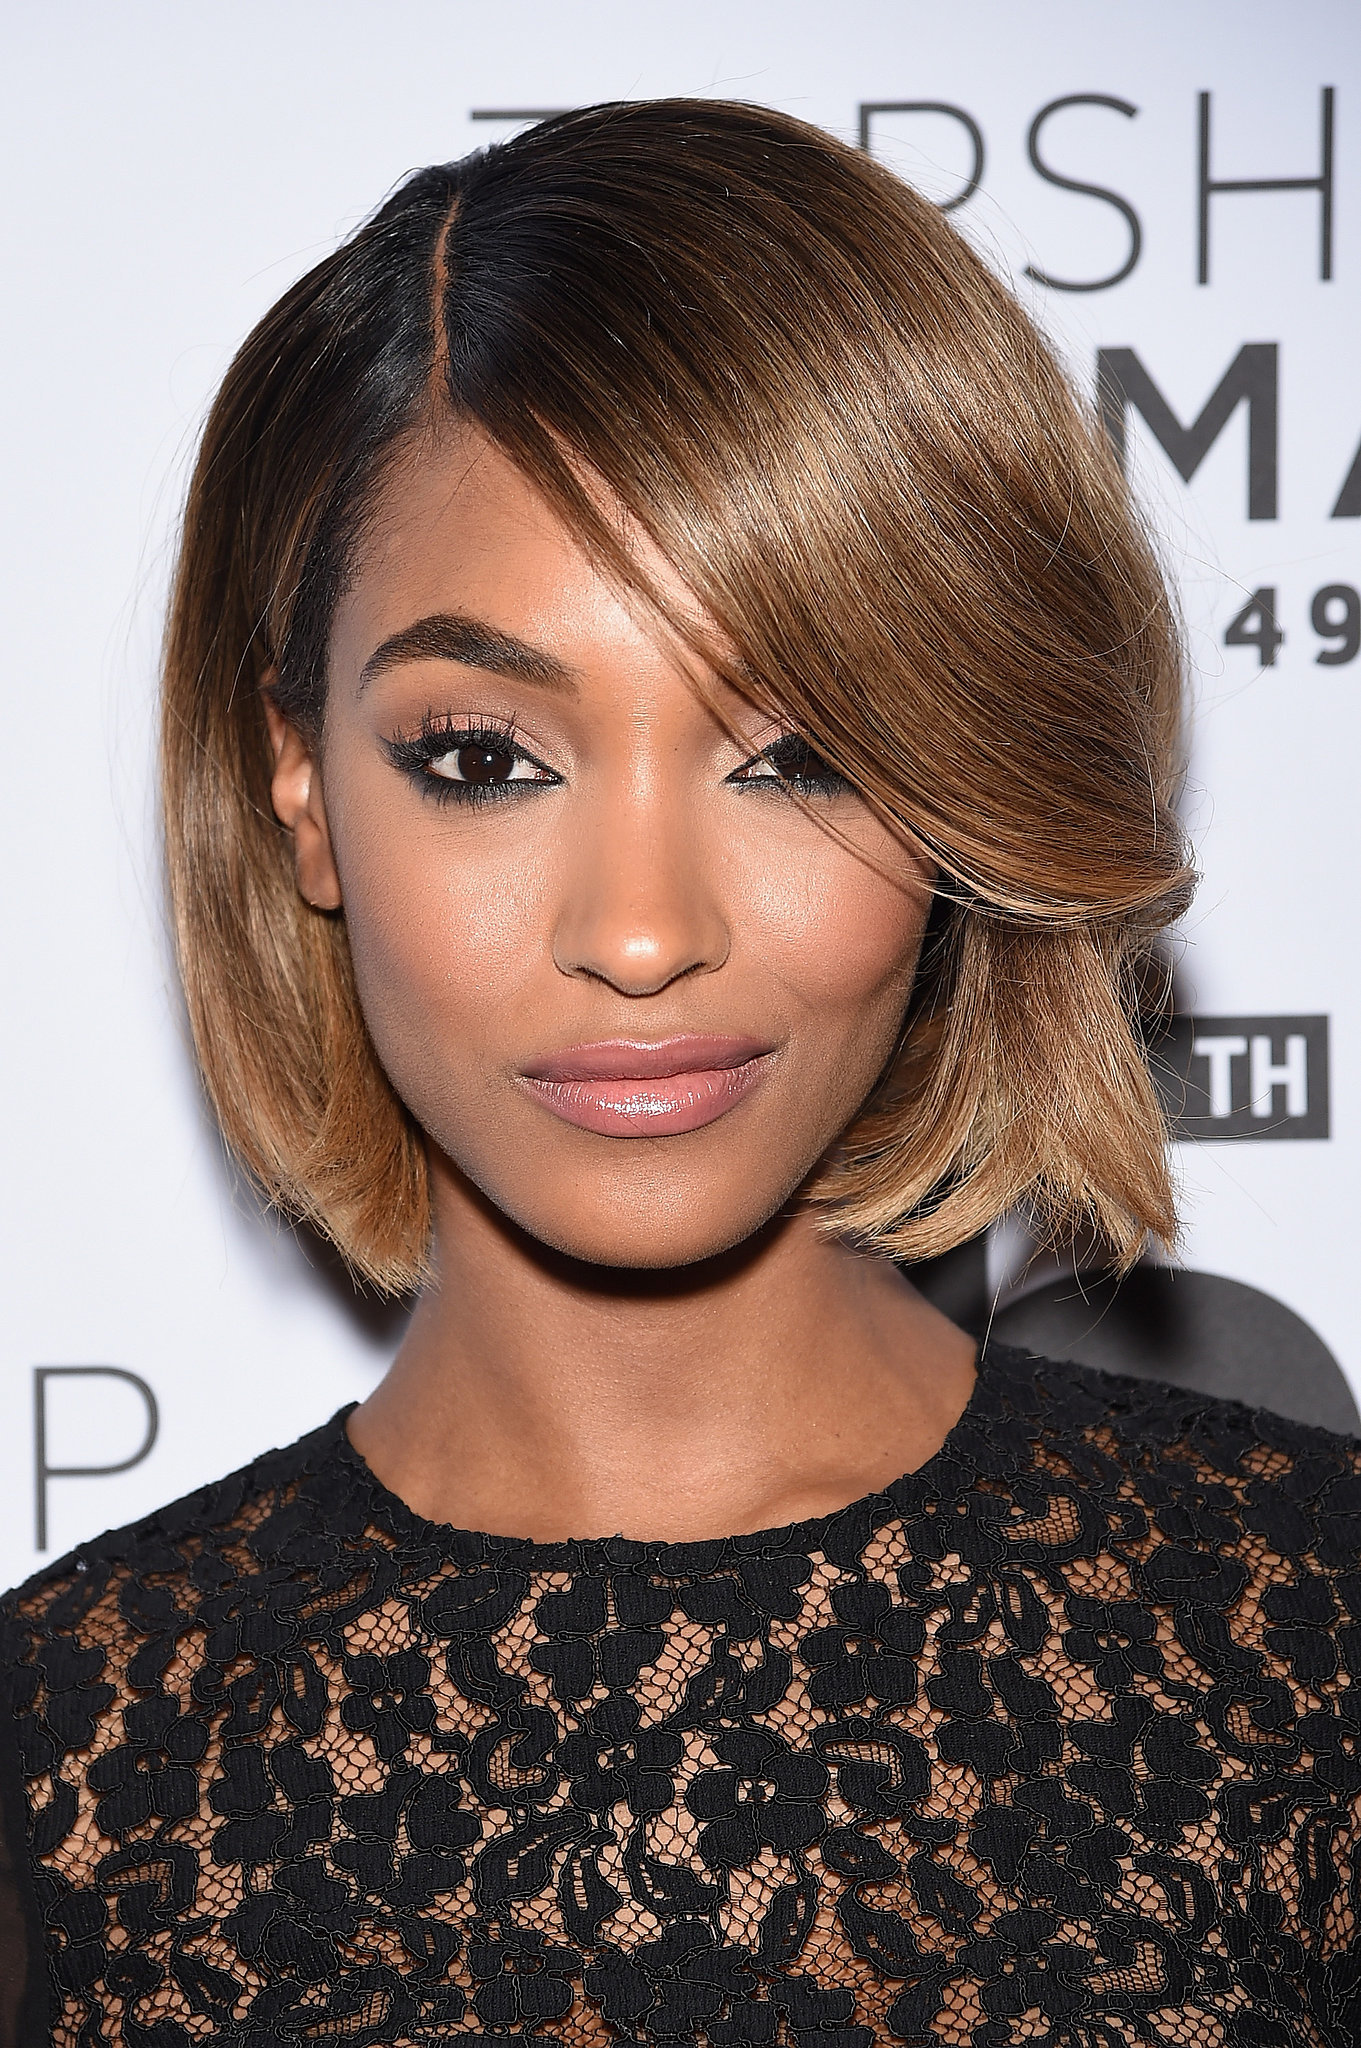 Hairstyles For Short Hair Date Night : Hairstyles For Short Hair Date Night 2017 - 2018 Best Cars Reviews